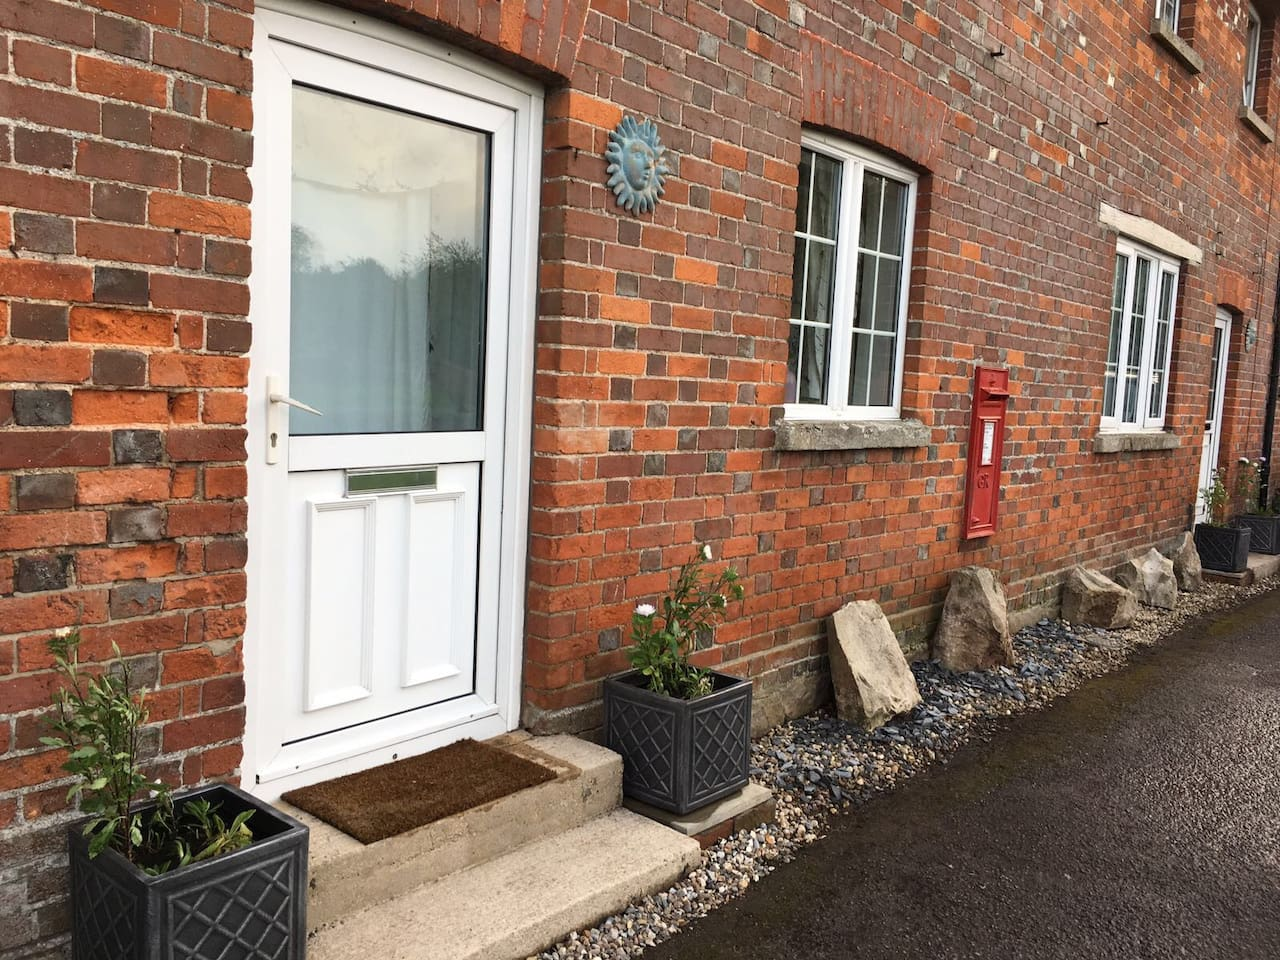 Number 4 used to be the old Post Office, we still have the post box in the wall.  Street parking available right outside the front door